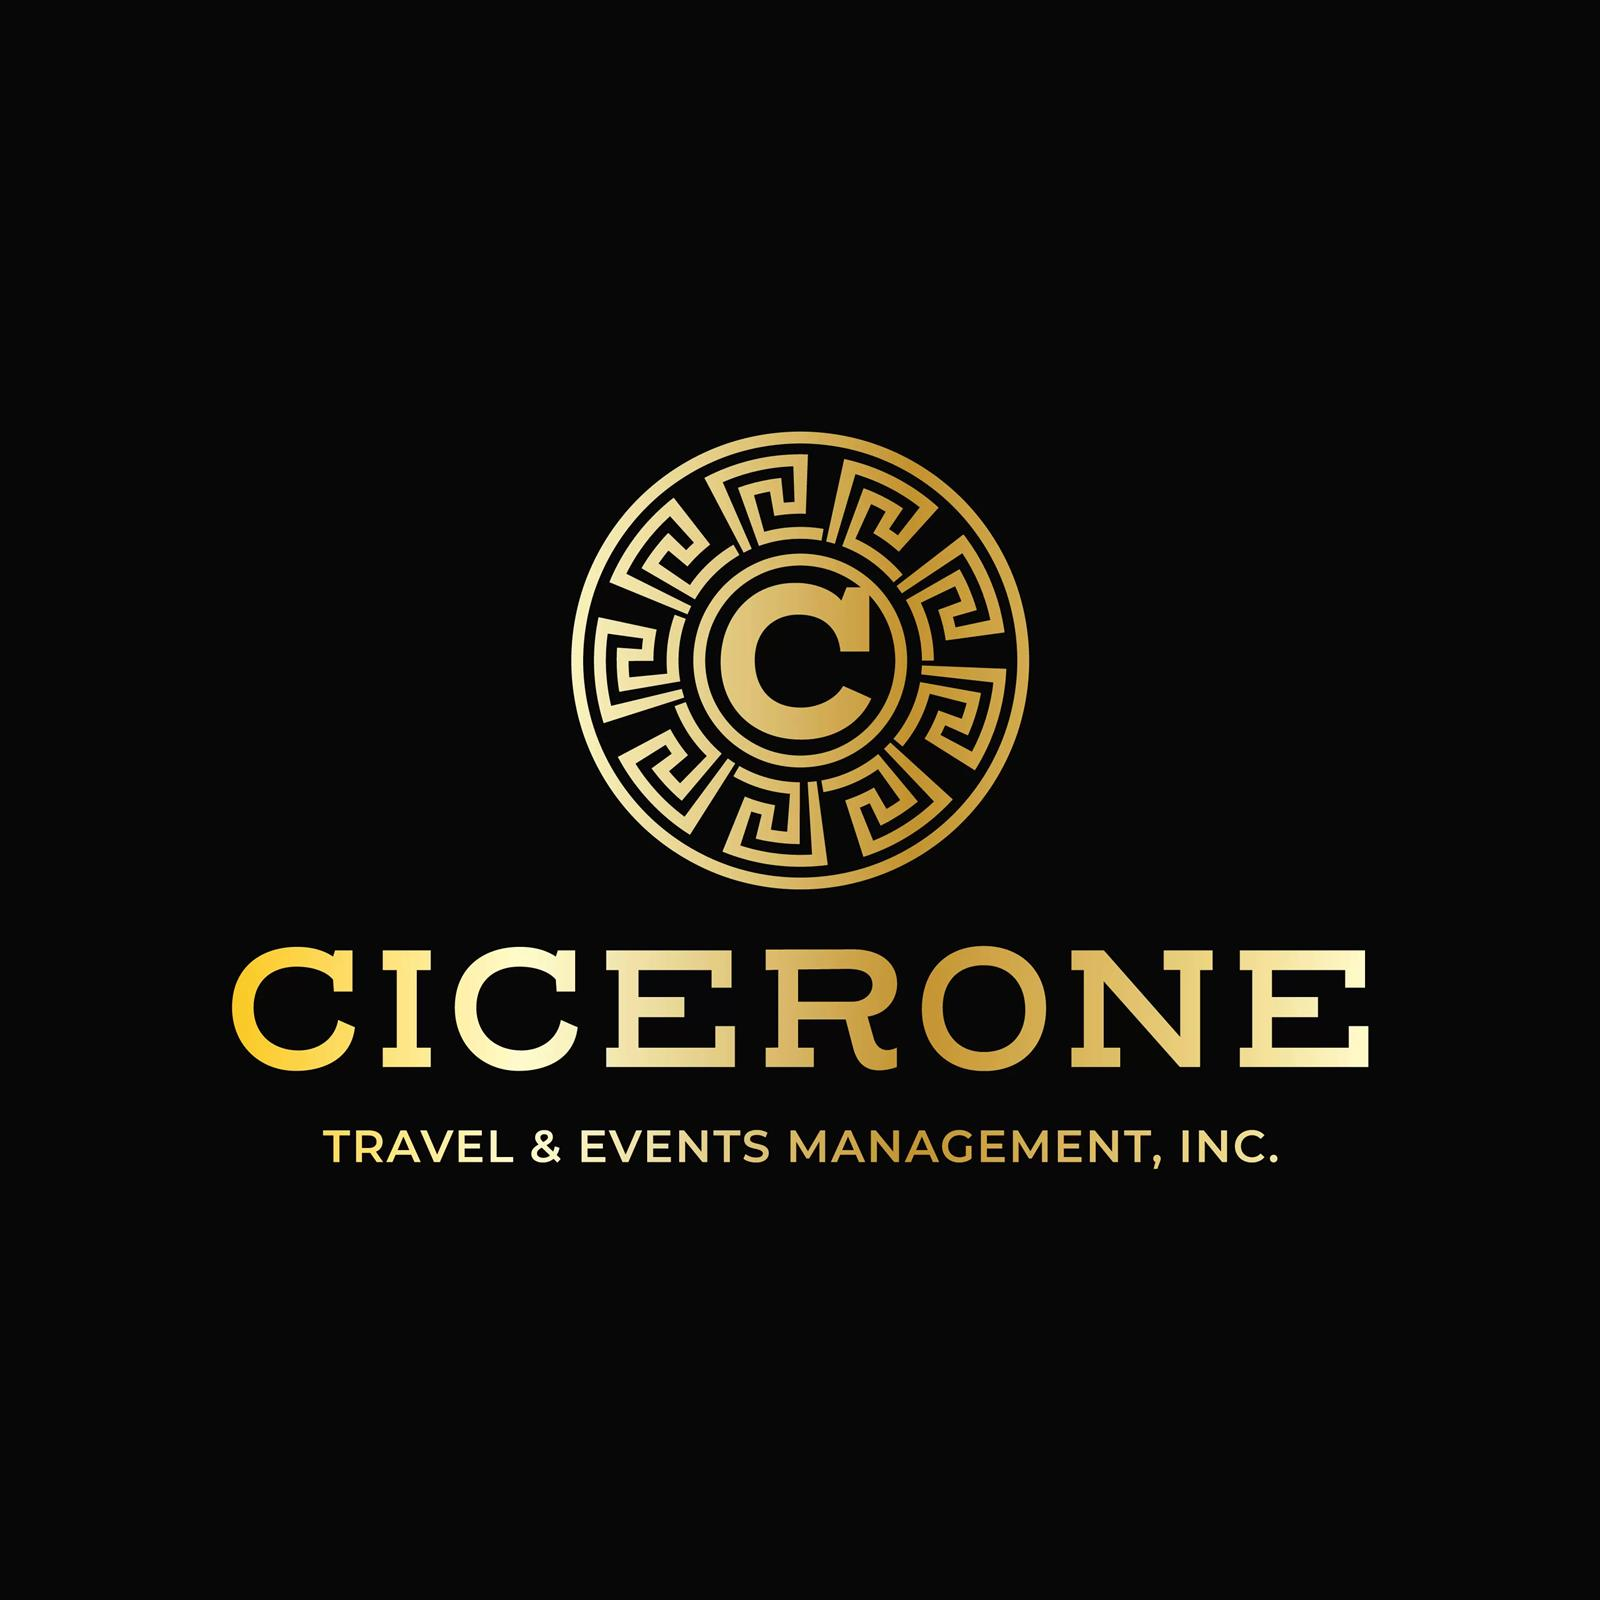 Cicerone Travel and Events